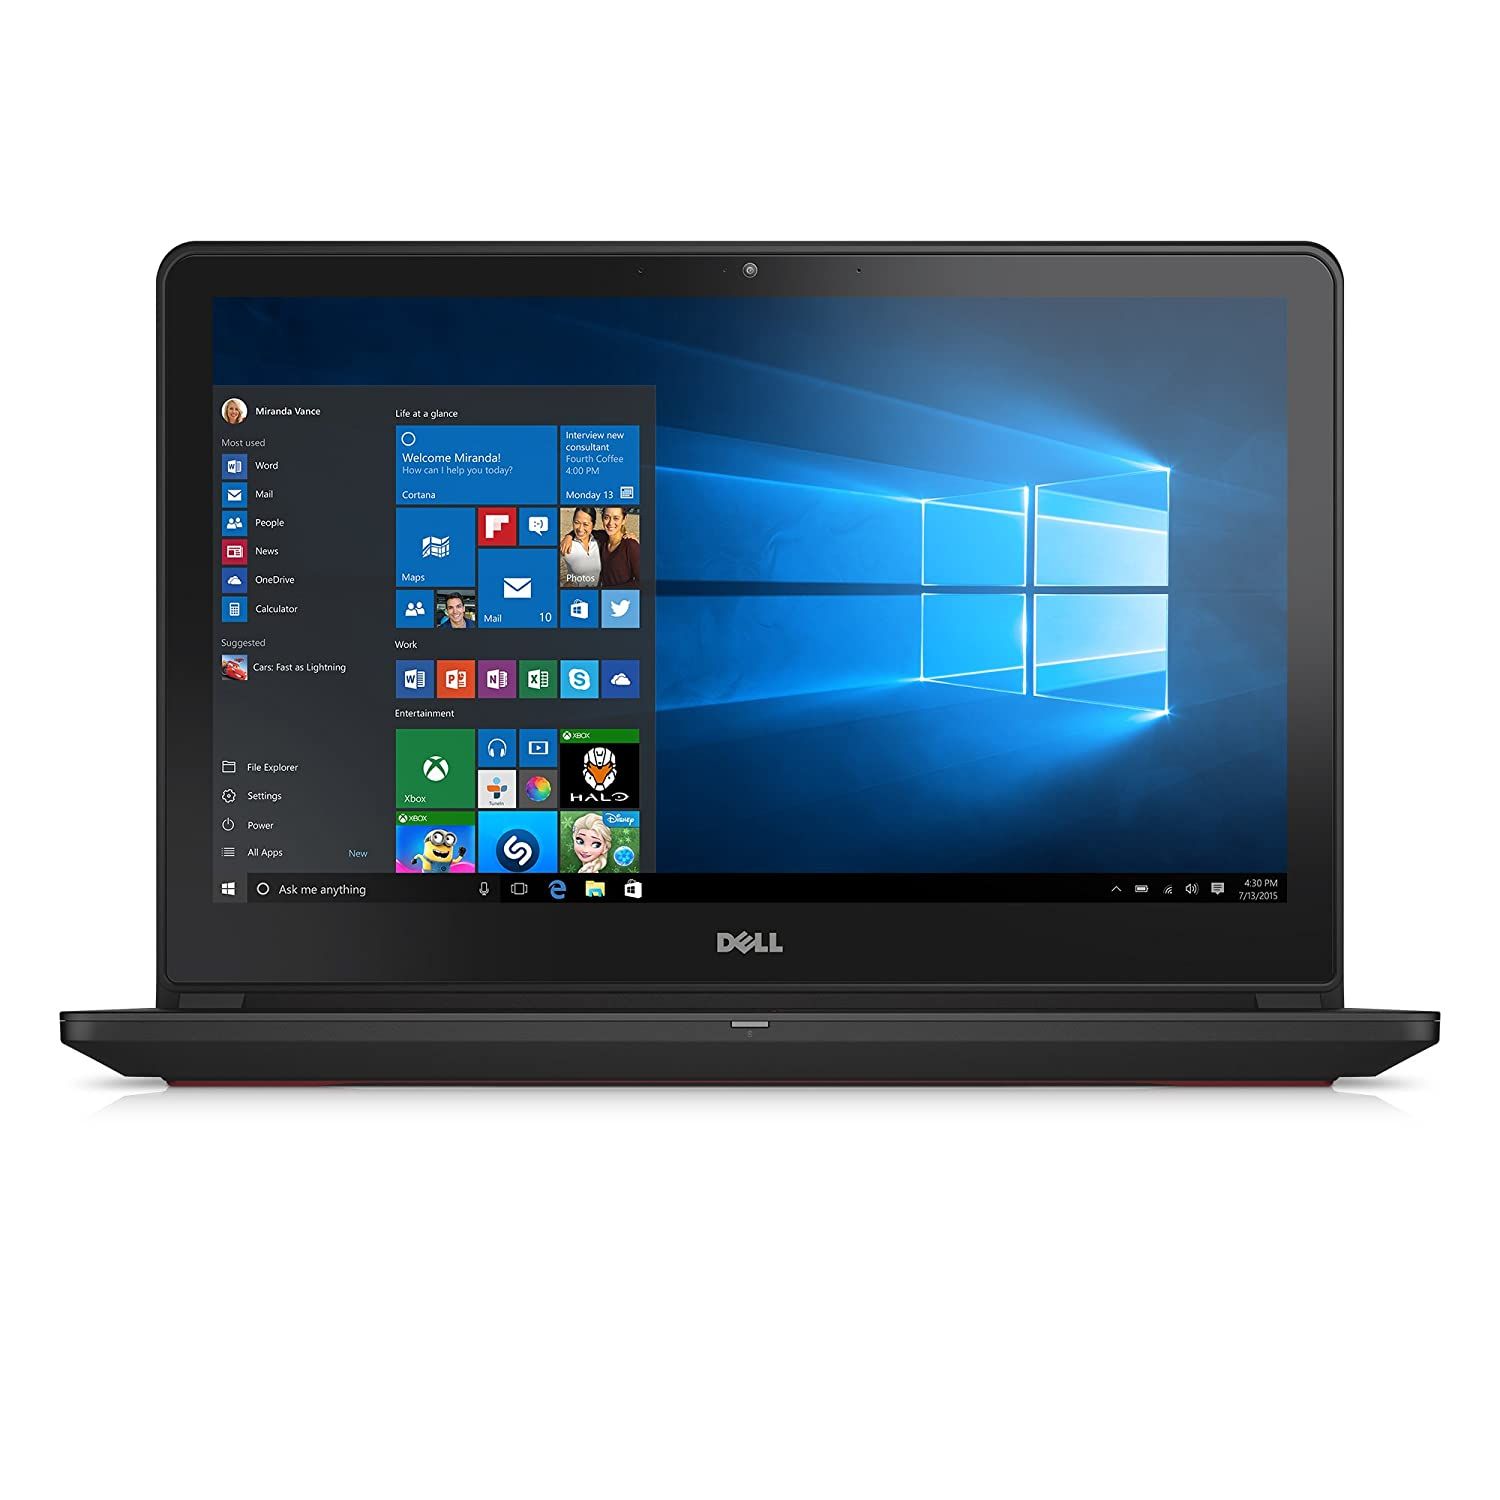 Dell Inspiron i7559-2512BLK 15.6 Inch FHD Laptop (6th Generation Intel...